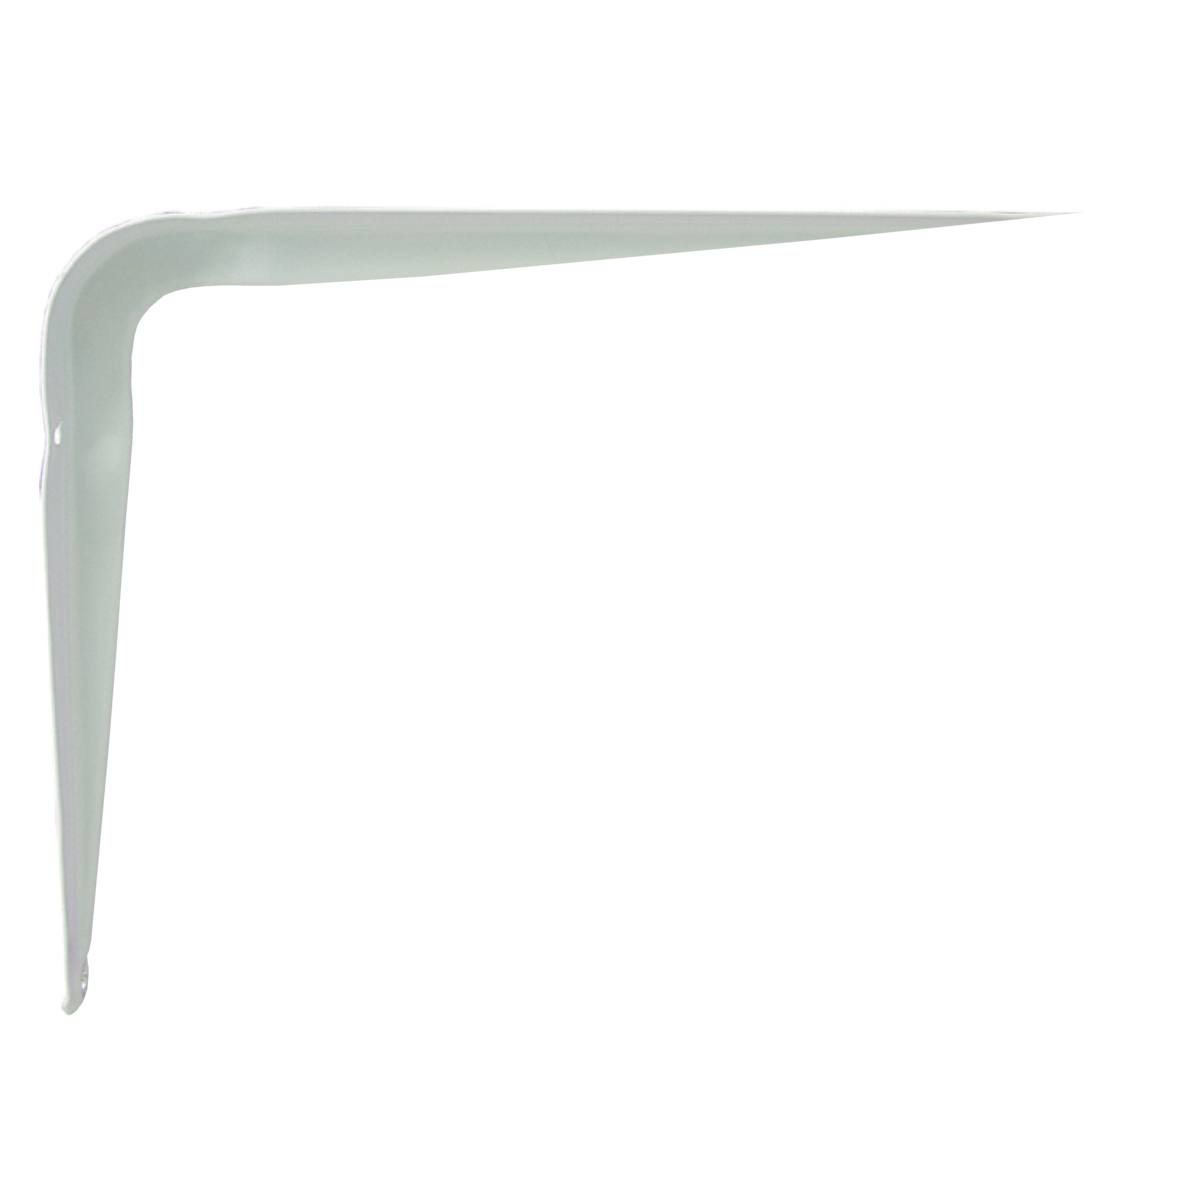 CONSOLE EMBOUTIE BLANCHE 200 x 250 MM